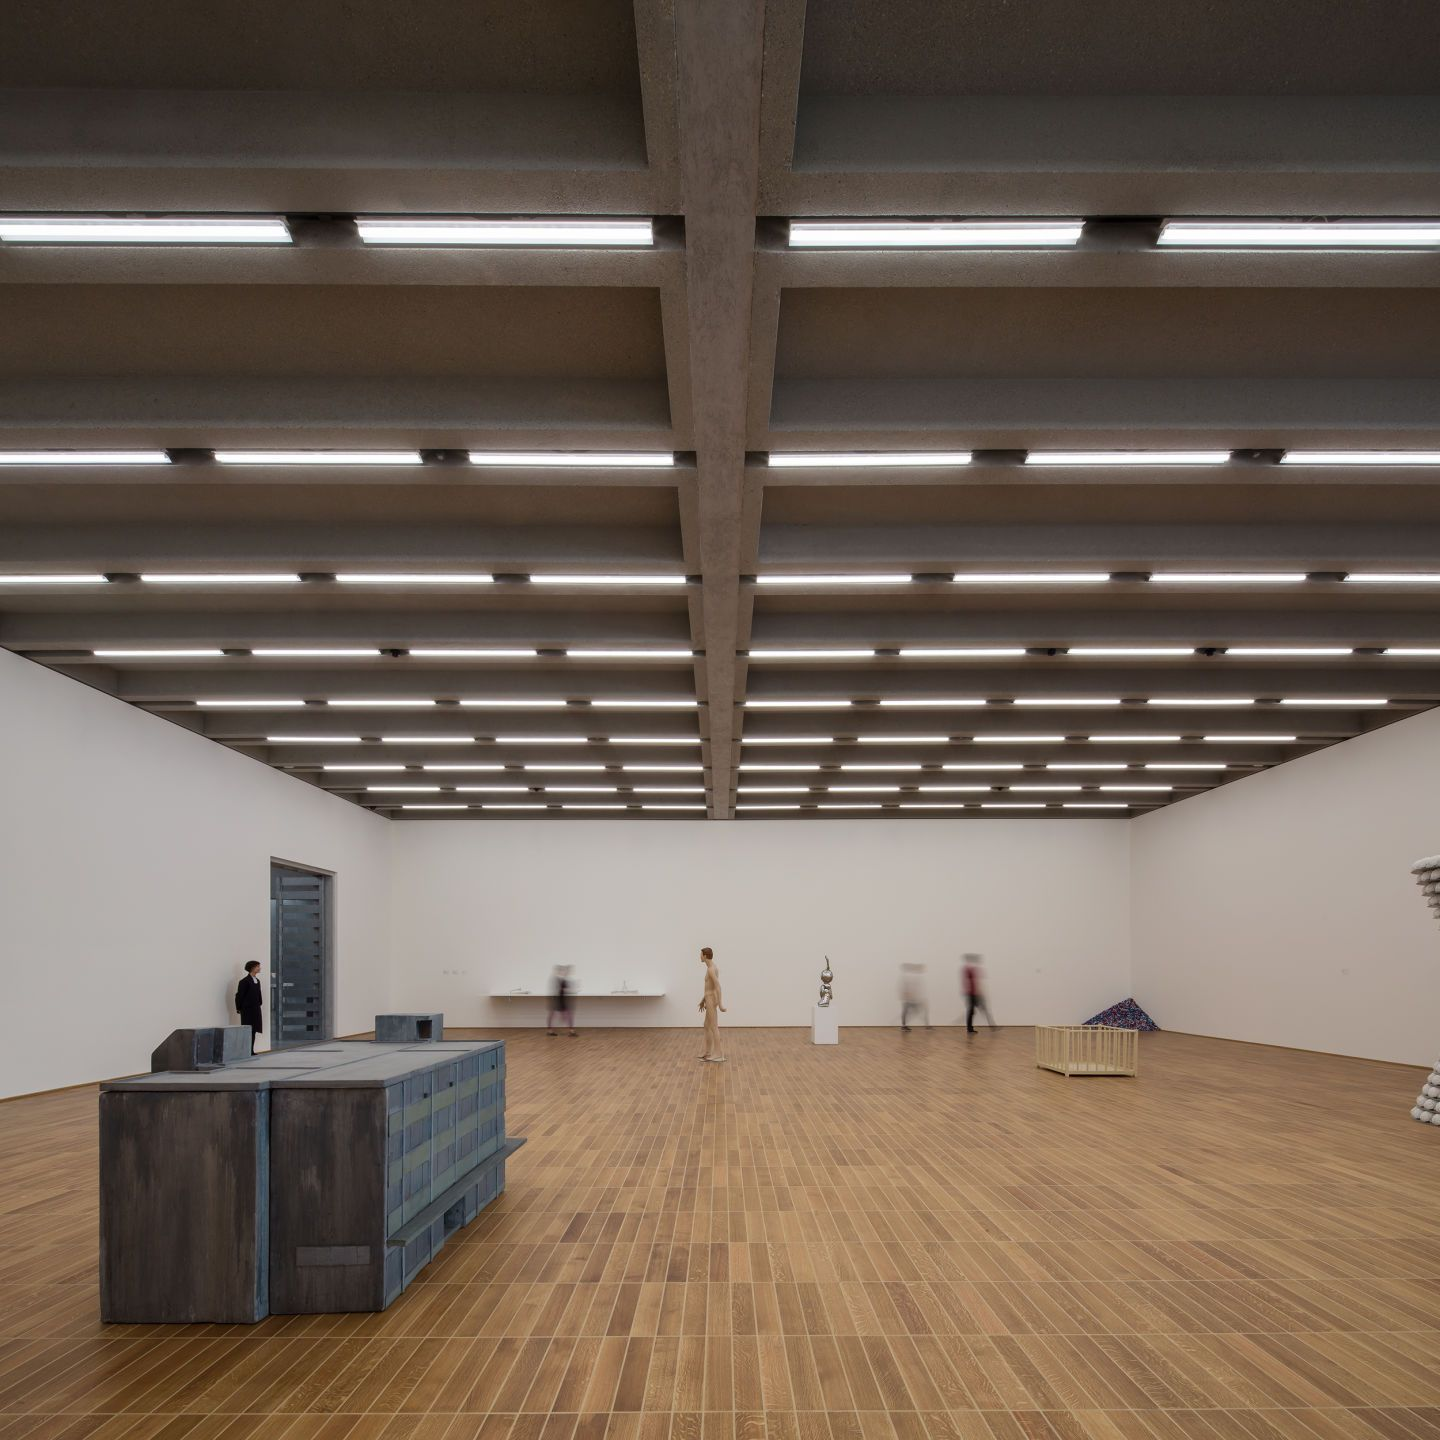 In April the Kunstmuseum Basel, which houses one of the largest and oldest public art collections in Europe, will become richer in space with the opening of a new extension. The main building (opened 1936) and the Kunstmuseum Basel | Gegenwart (opened ...